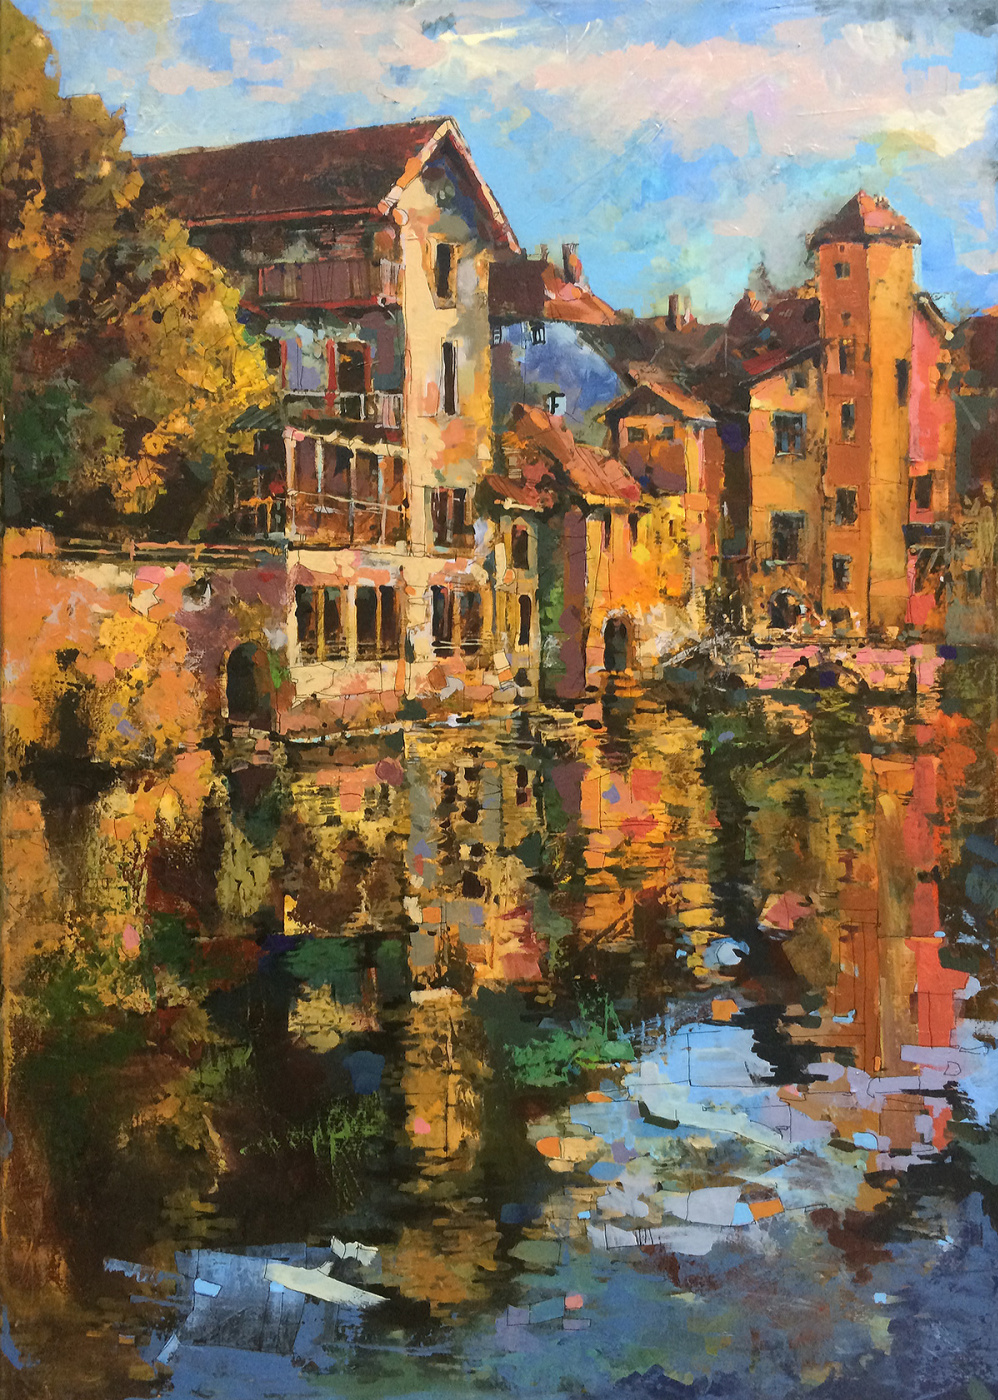 Mike Bezloska. Cityscape with canal